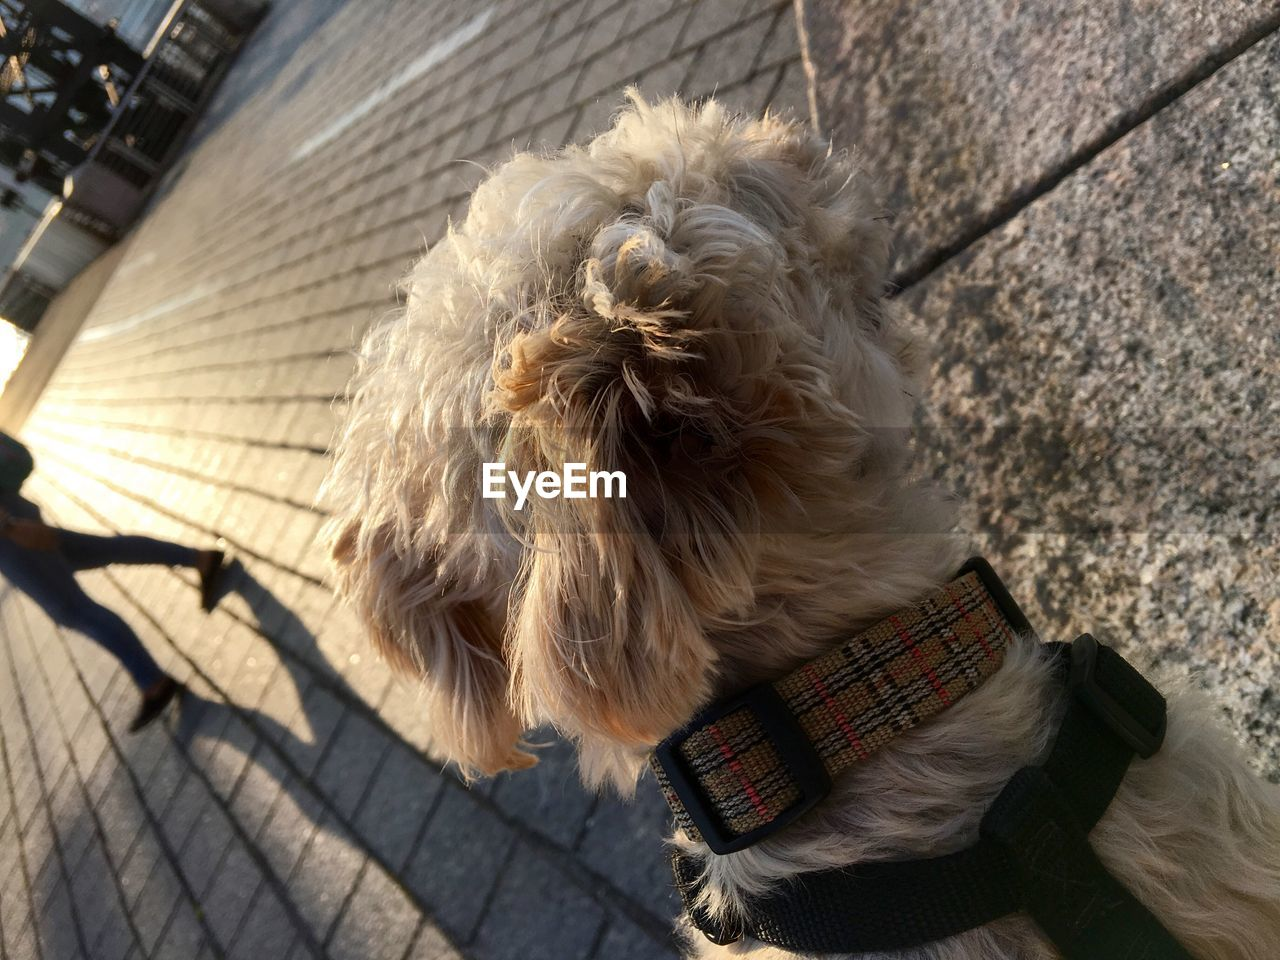 dog, one animal, domestic animals, pets, animal themes, outdoors, animal hair, day, mammal, rear view, one person, real people, sunlight, lifestyles, pet clothing, beard, blond hair, city, close-up, people